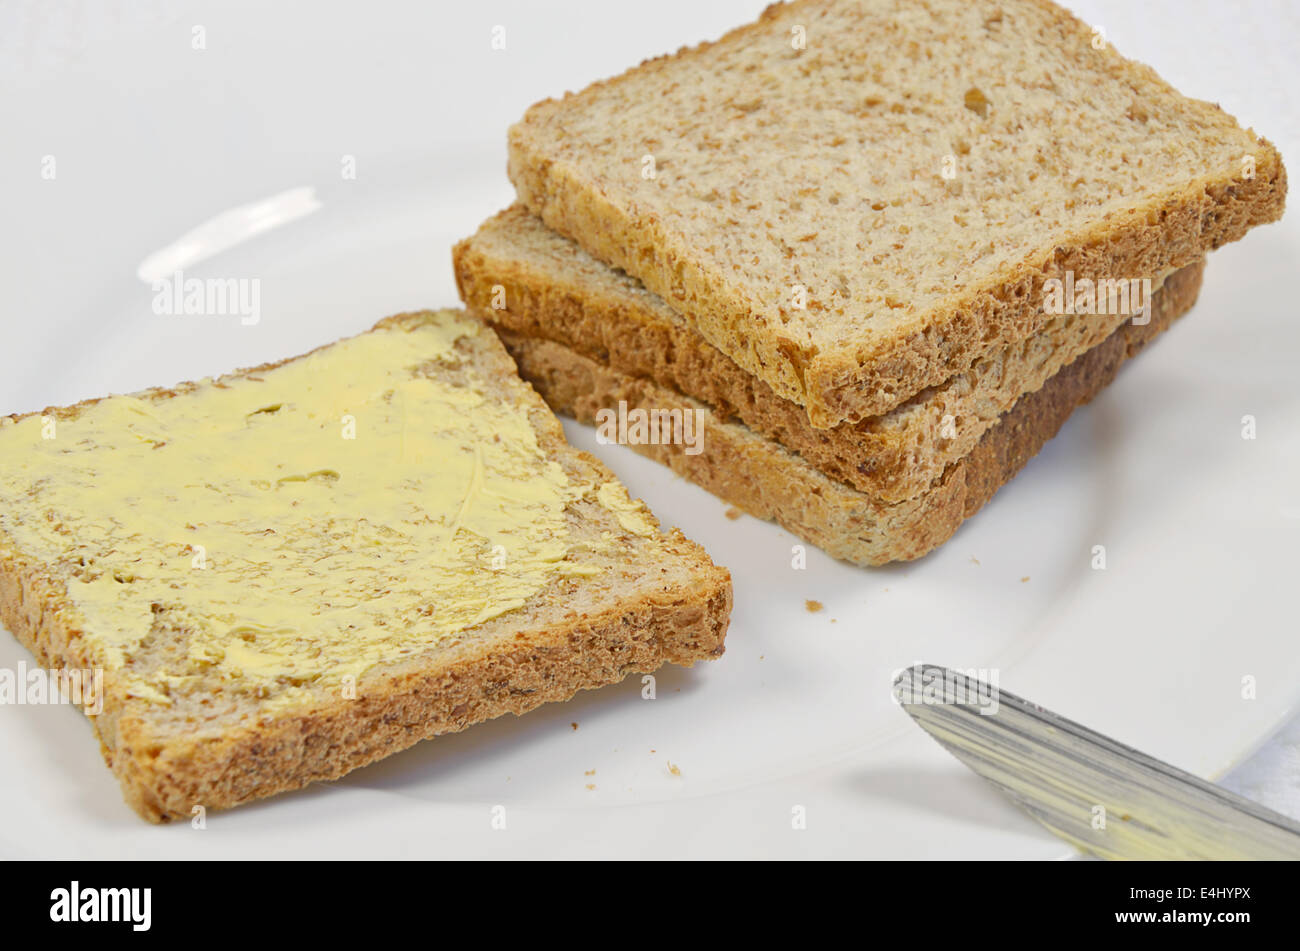 four slices of toast and butter with knife on white plate, close up, full frame - Stock Image